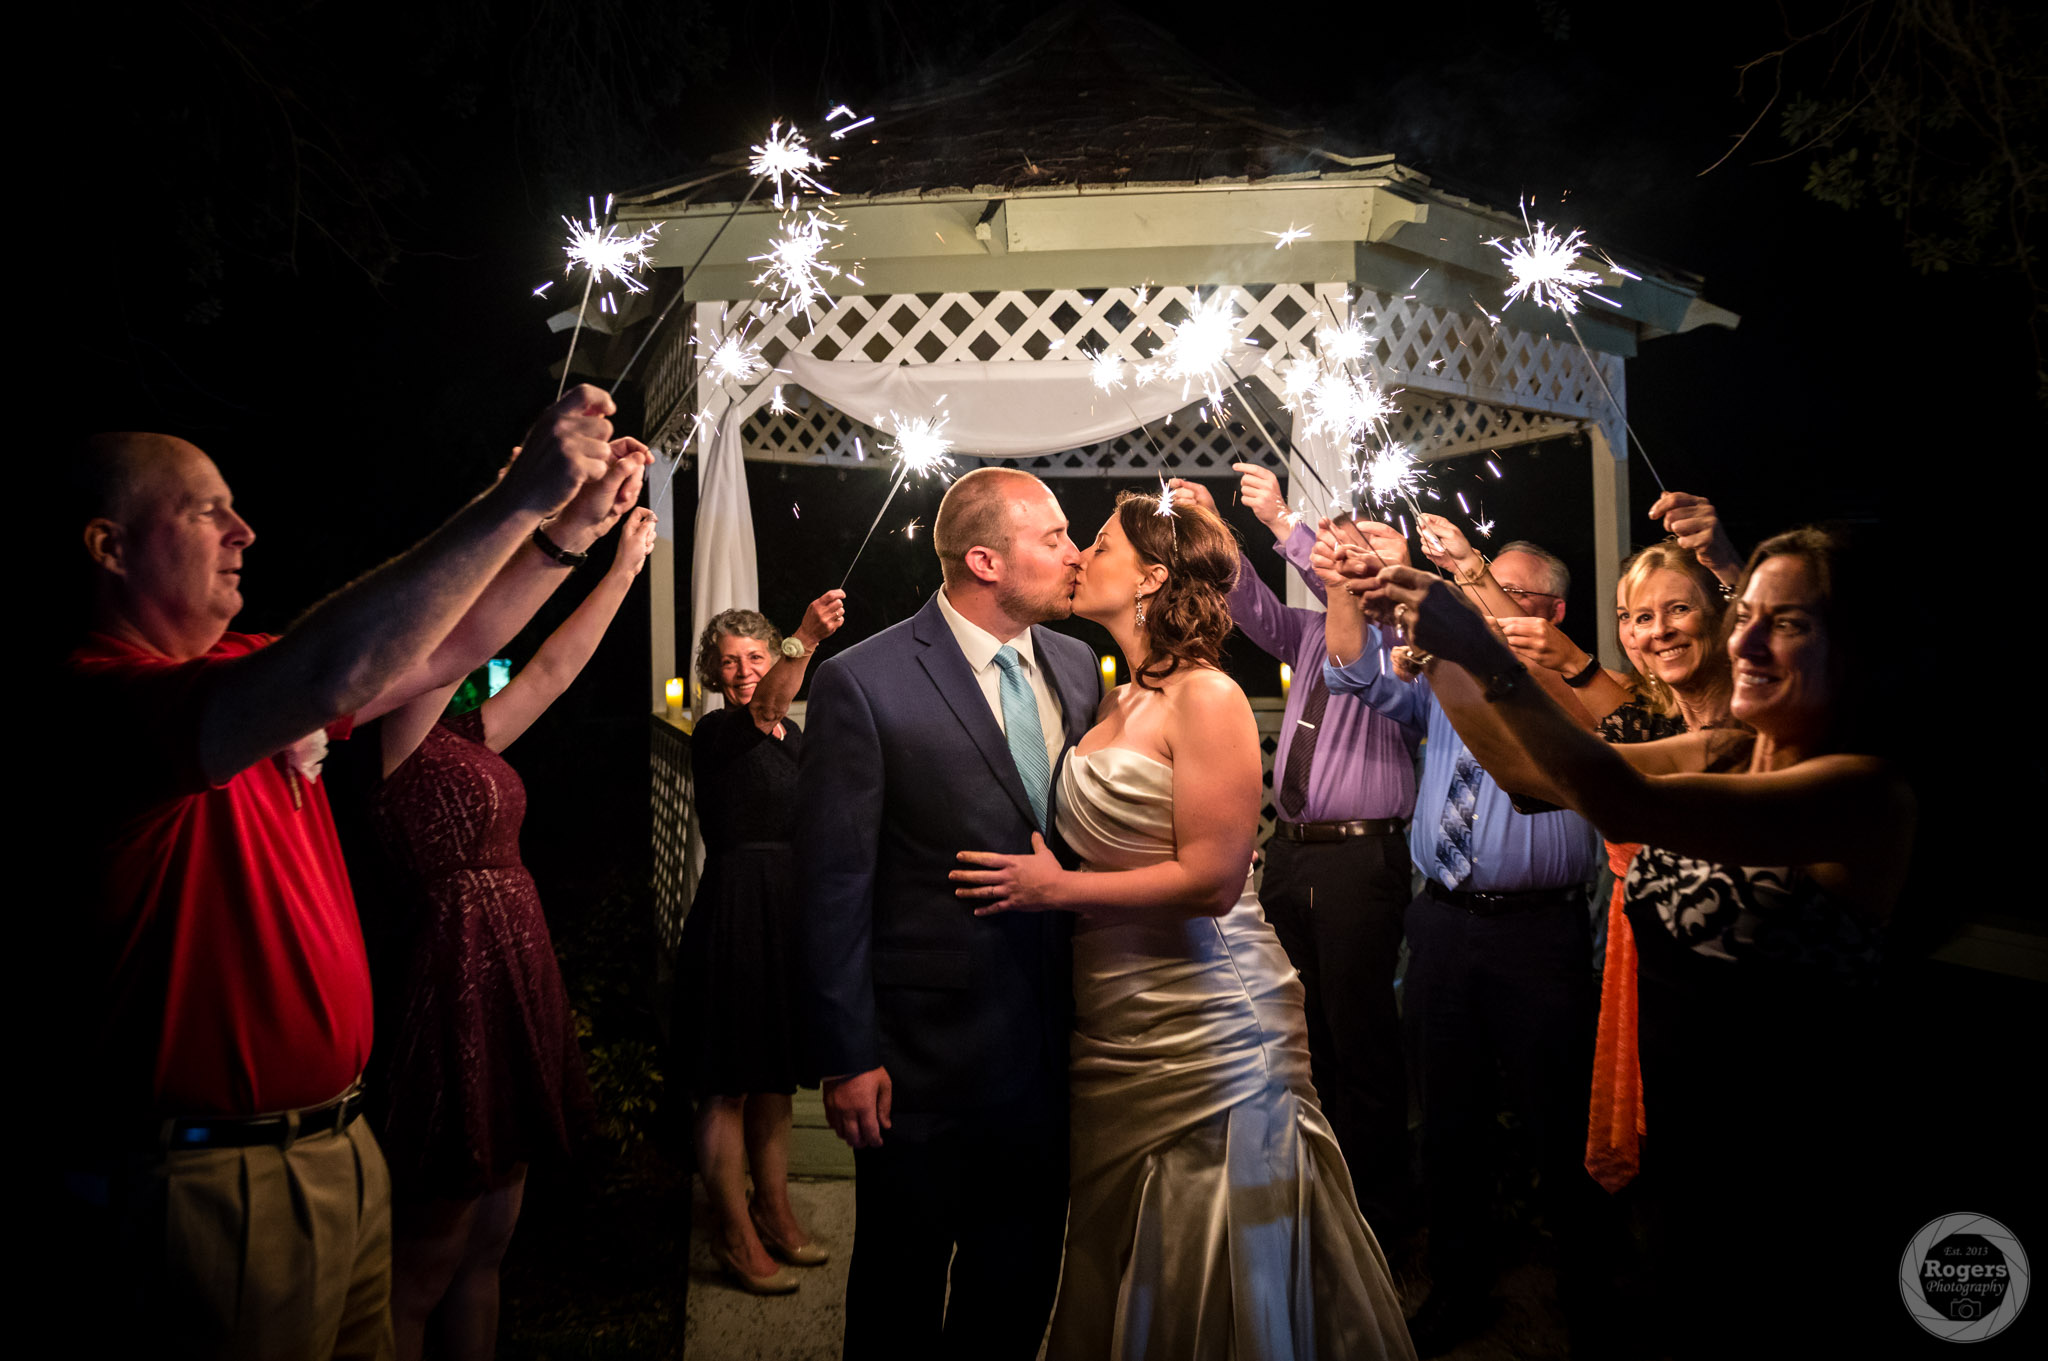 Cole + Briana {destination wedding}